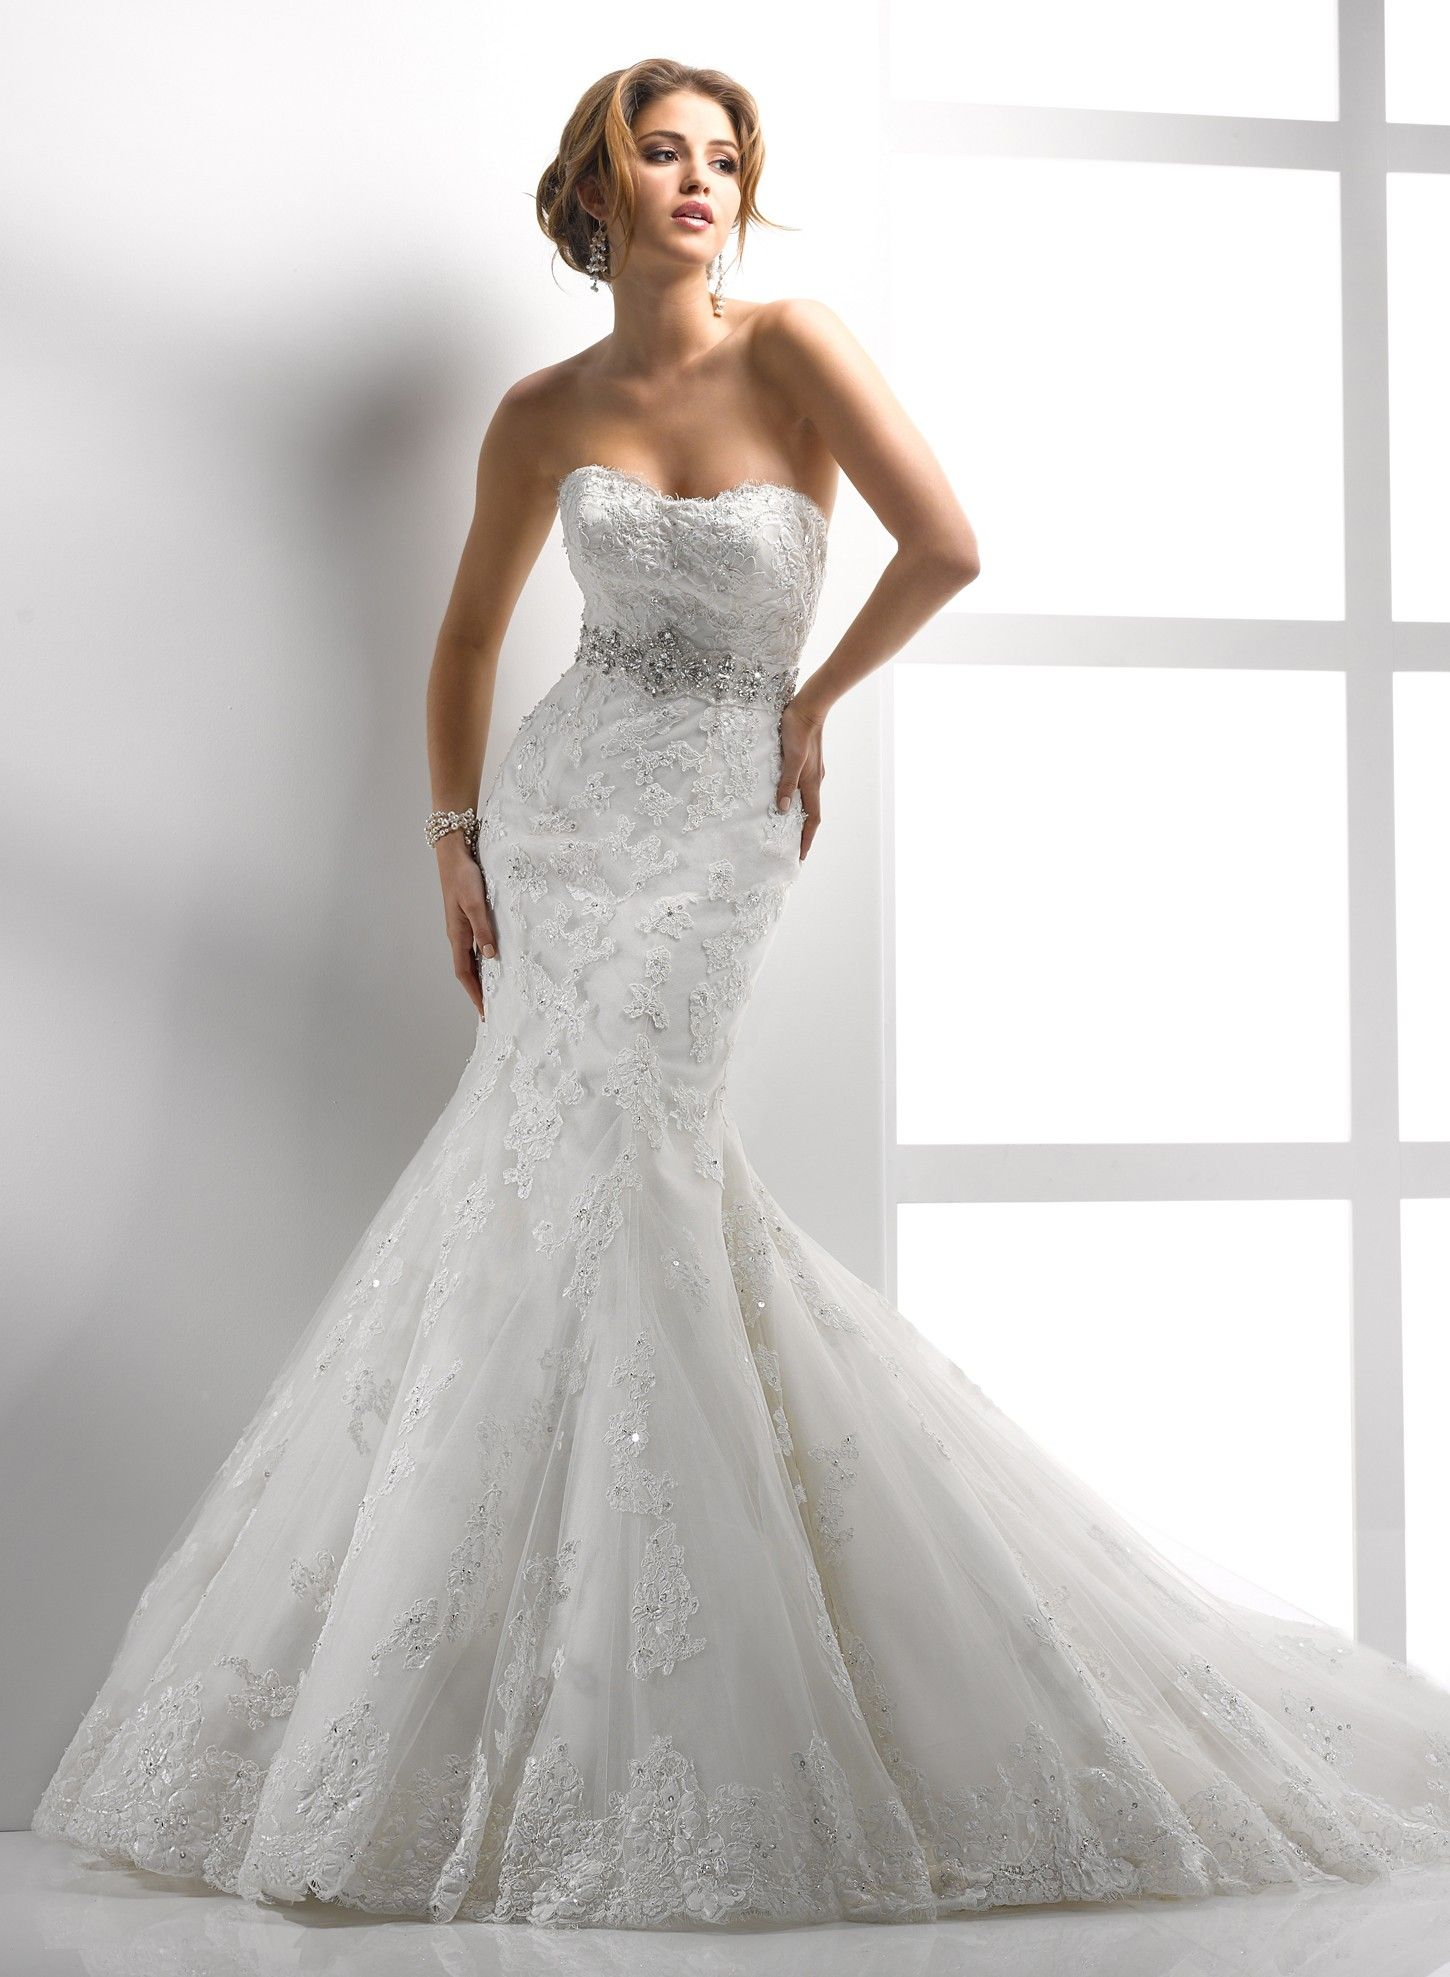 wedding dresses for hourglass shaped women | Yes to the Dress ...